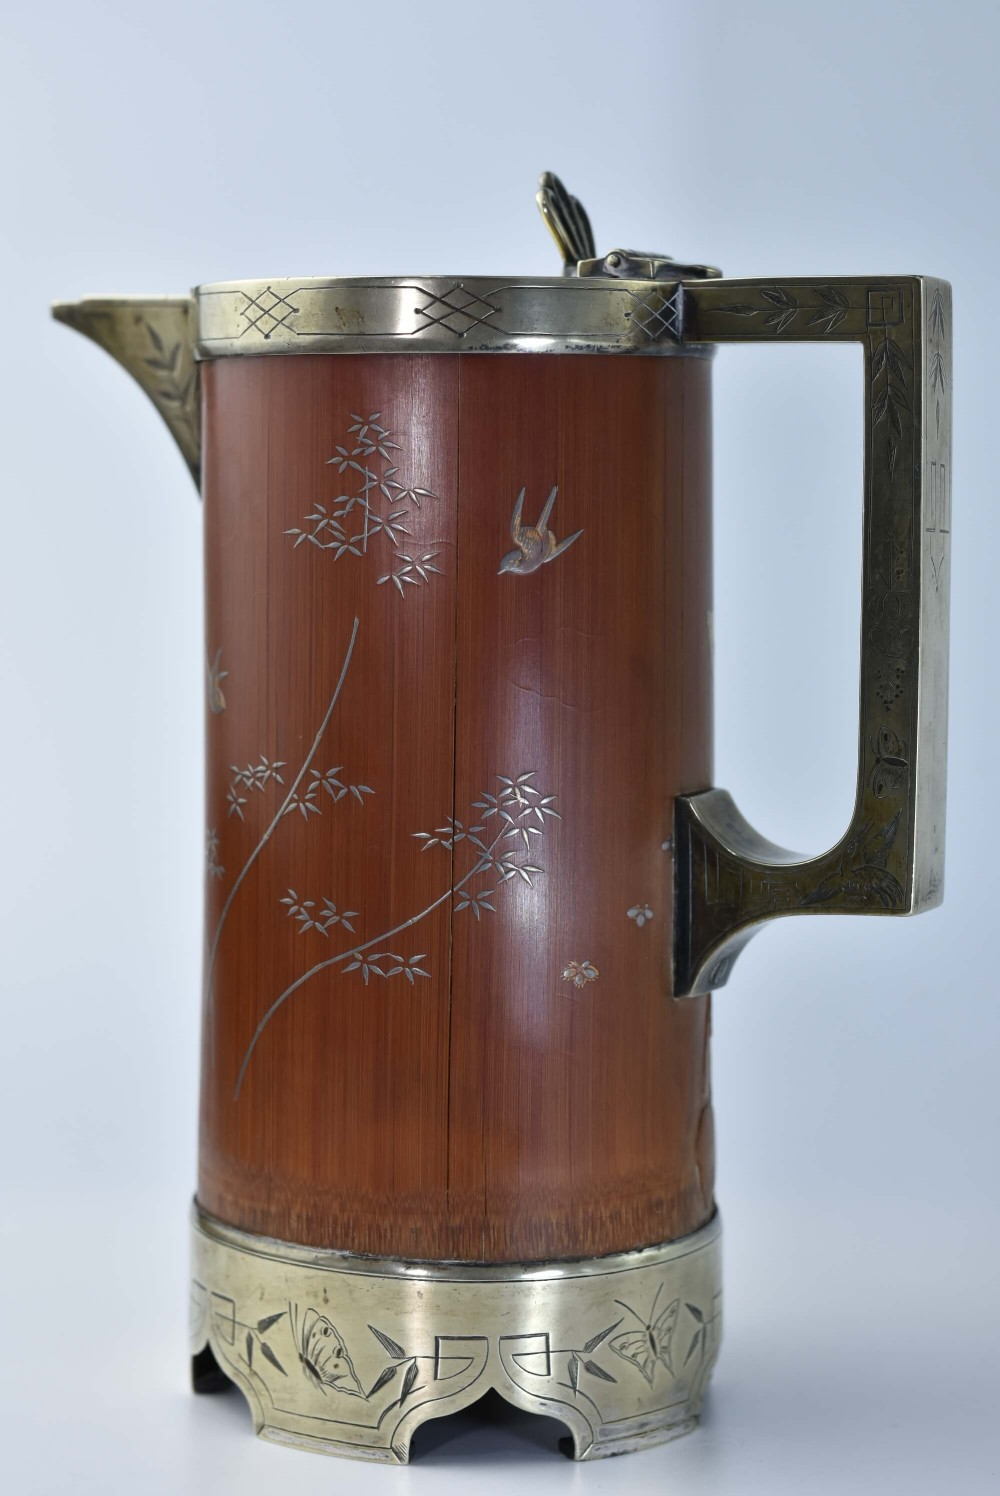 stunning aesthetic movement carvedinlaid bamboo and engraved silver plated jug